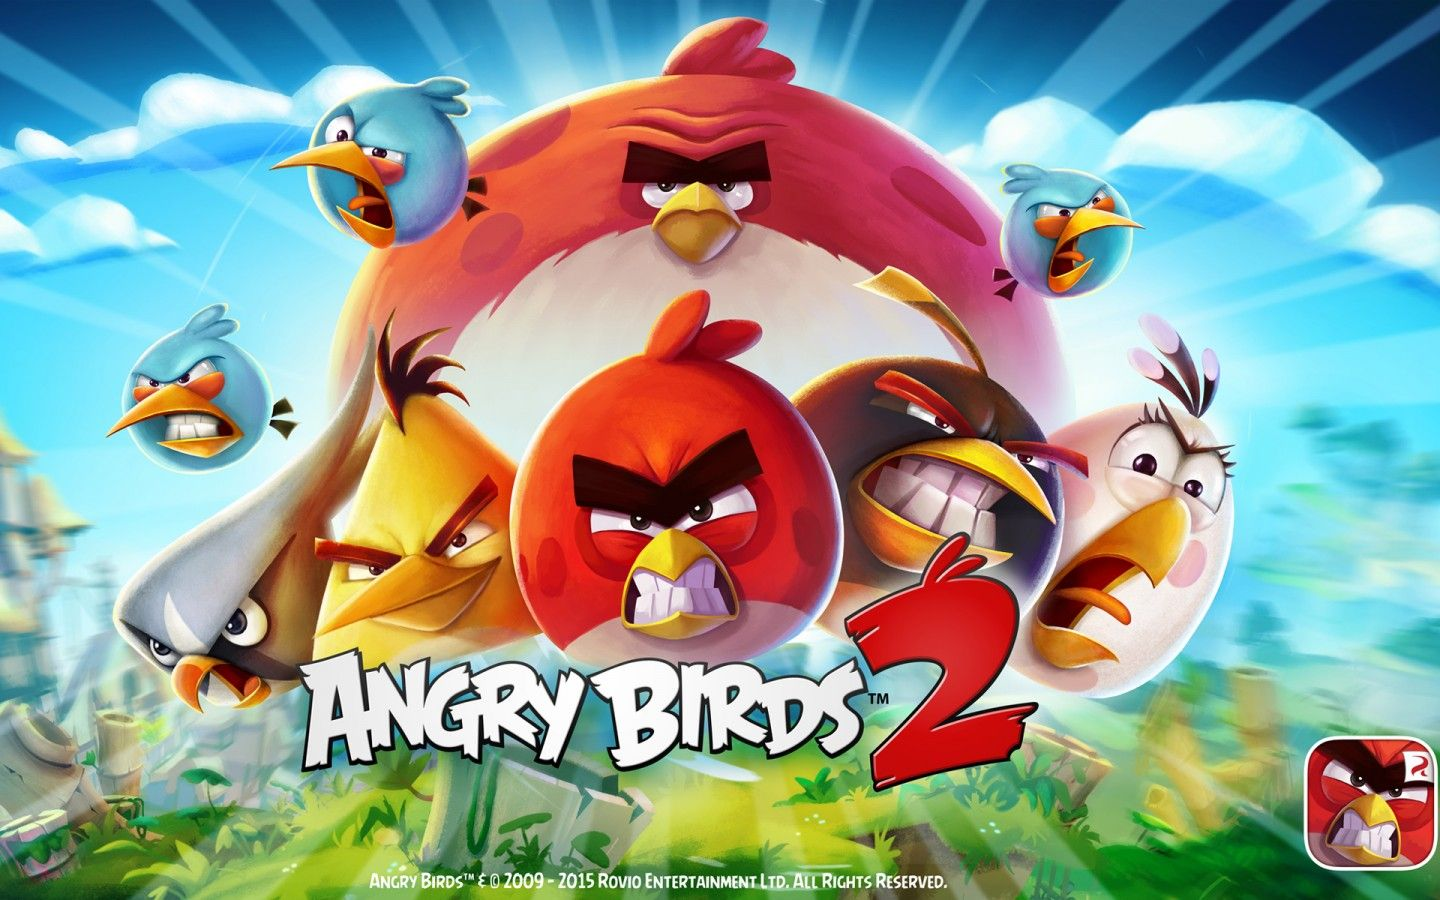 Angry Birds 2 Top Hd Full Free Wallpaper Ui Angry Birds 2 Game